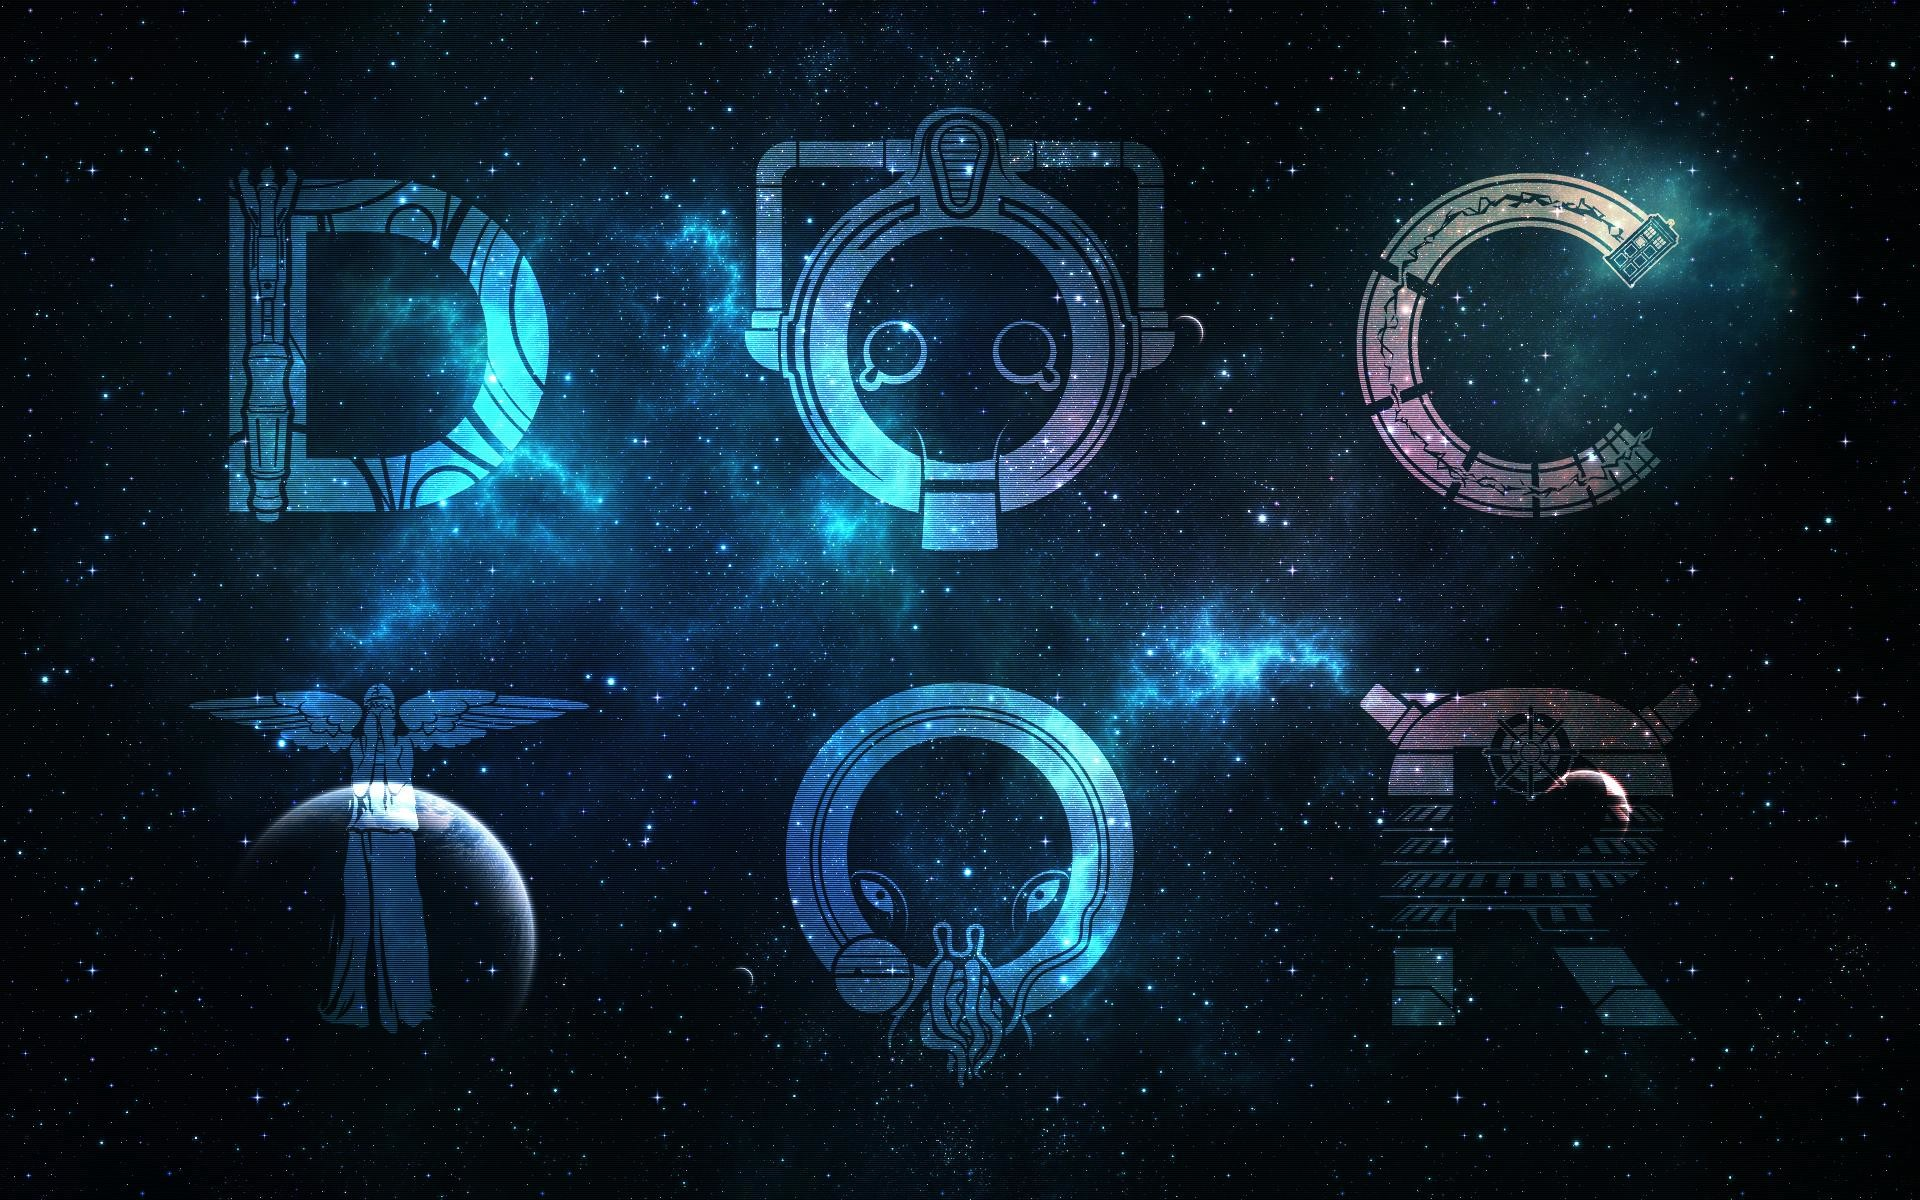 Doctor wallpapers 61 images - Dr who wallpaper ...